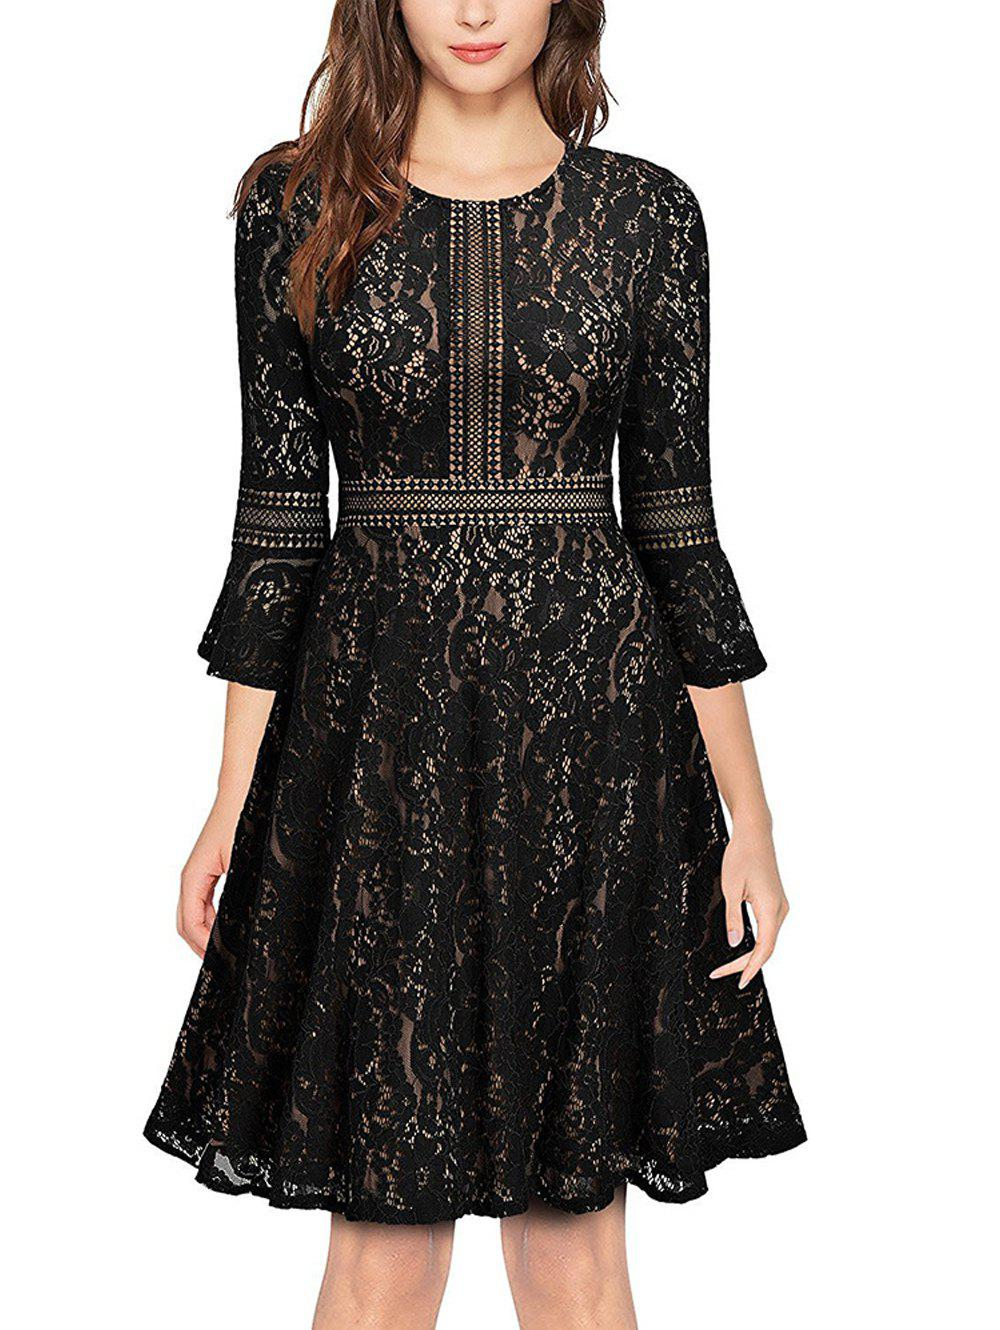 Hot Lace Half Sleeve Big Swing A-Line Dress